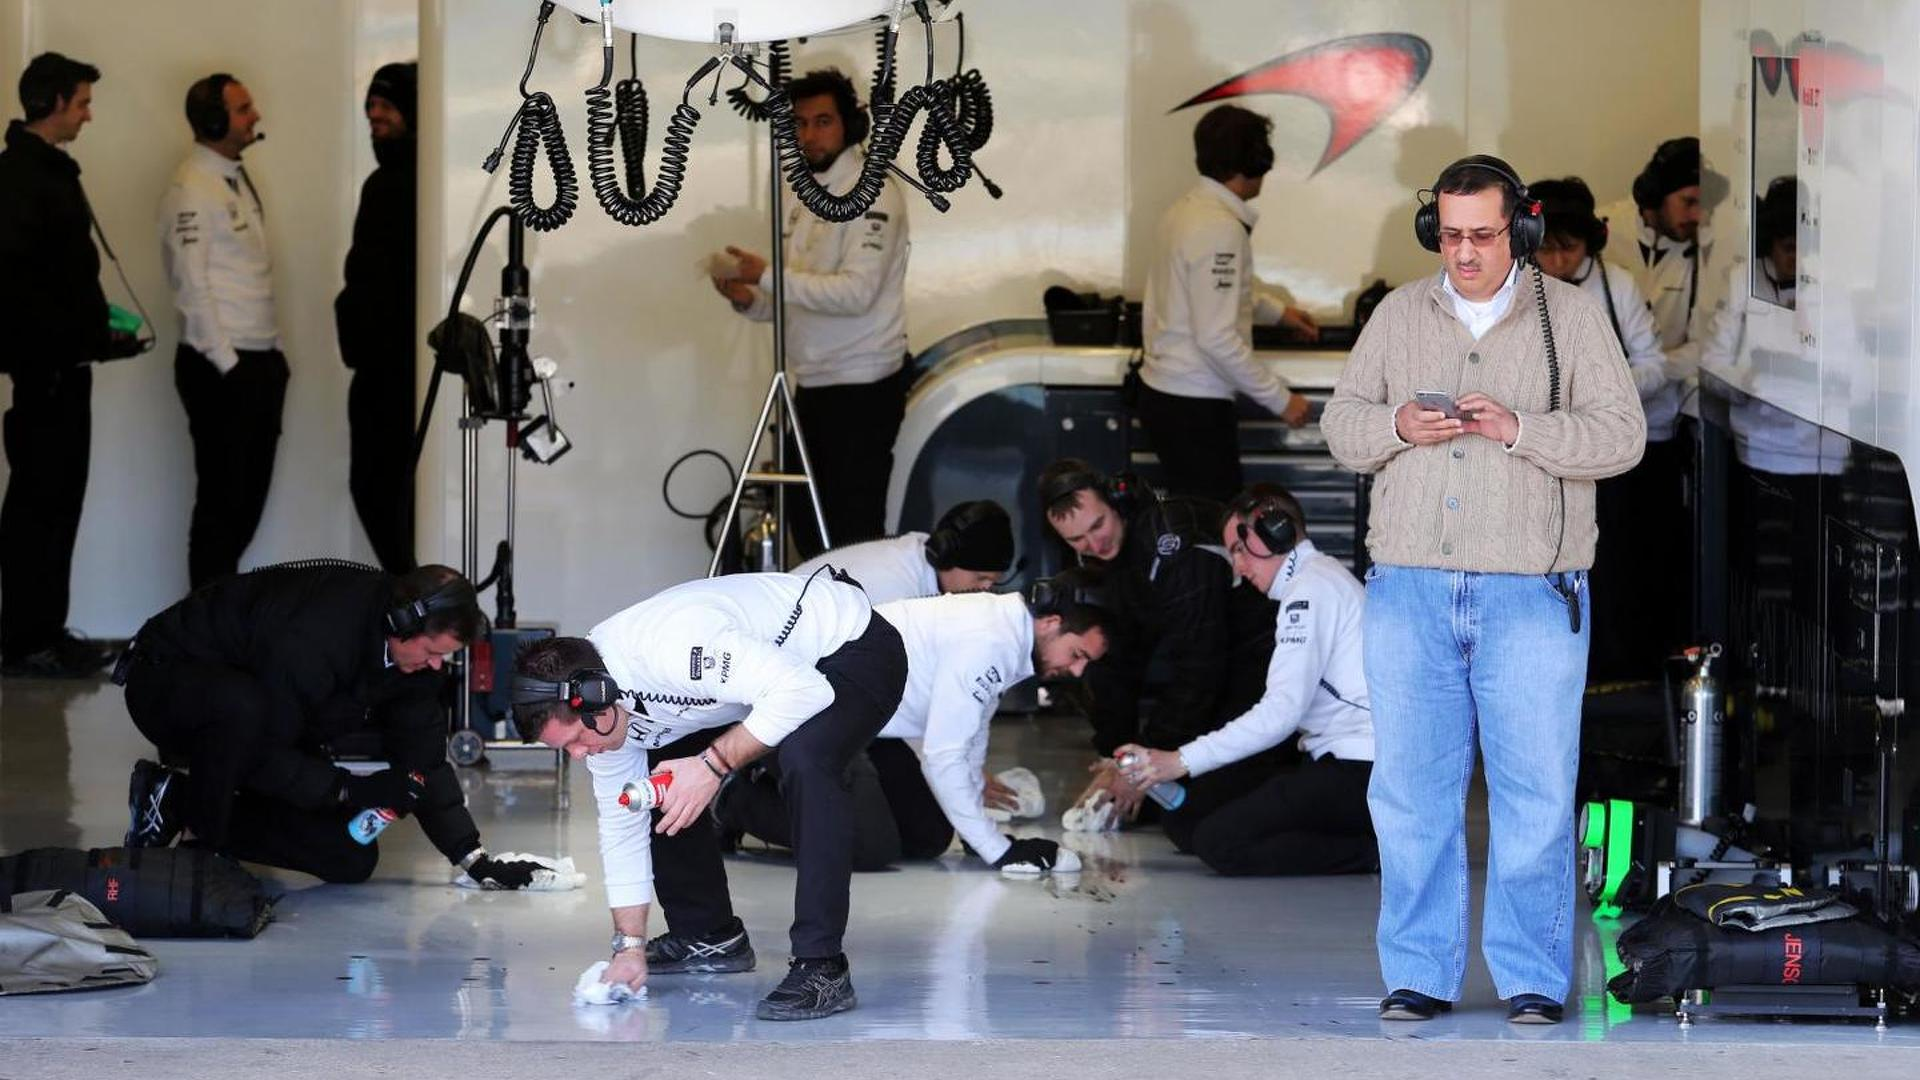 McLaren-Honda working on cultural barriers - report